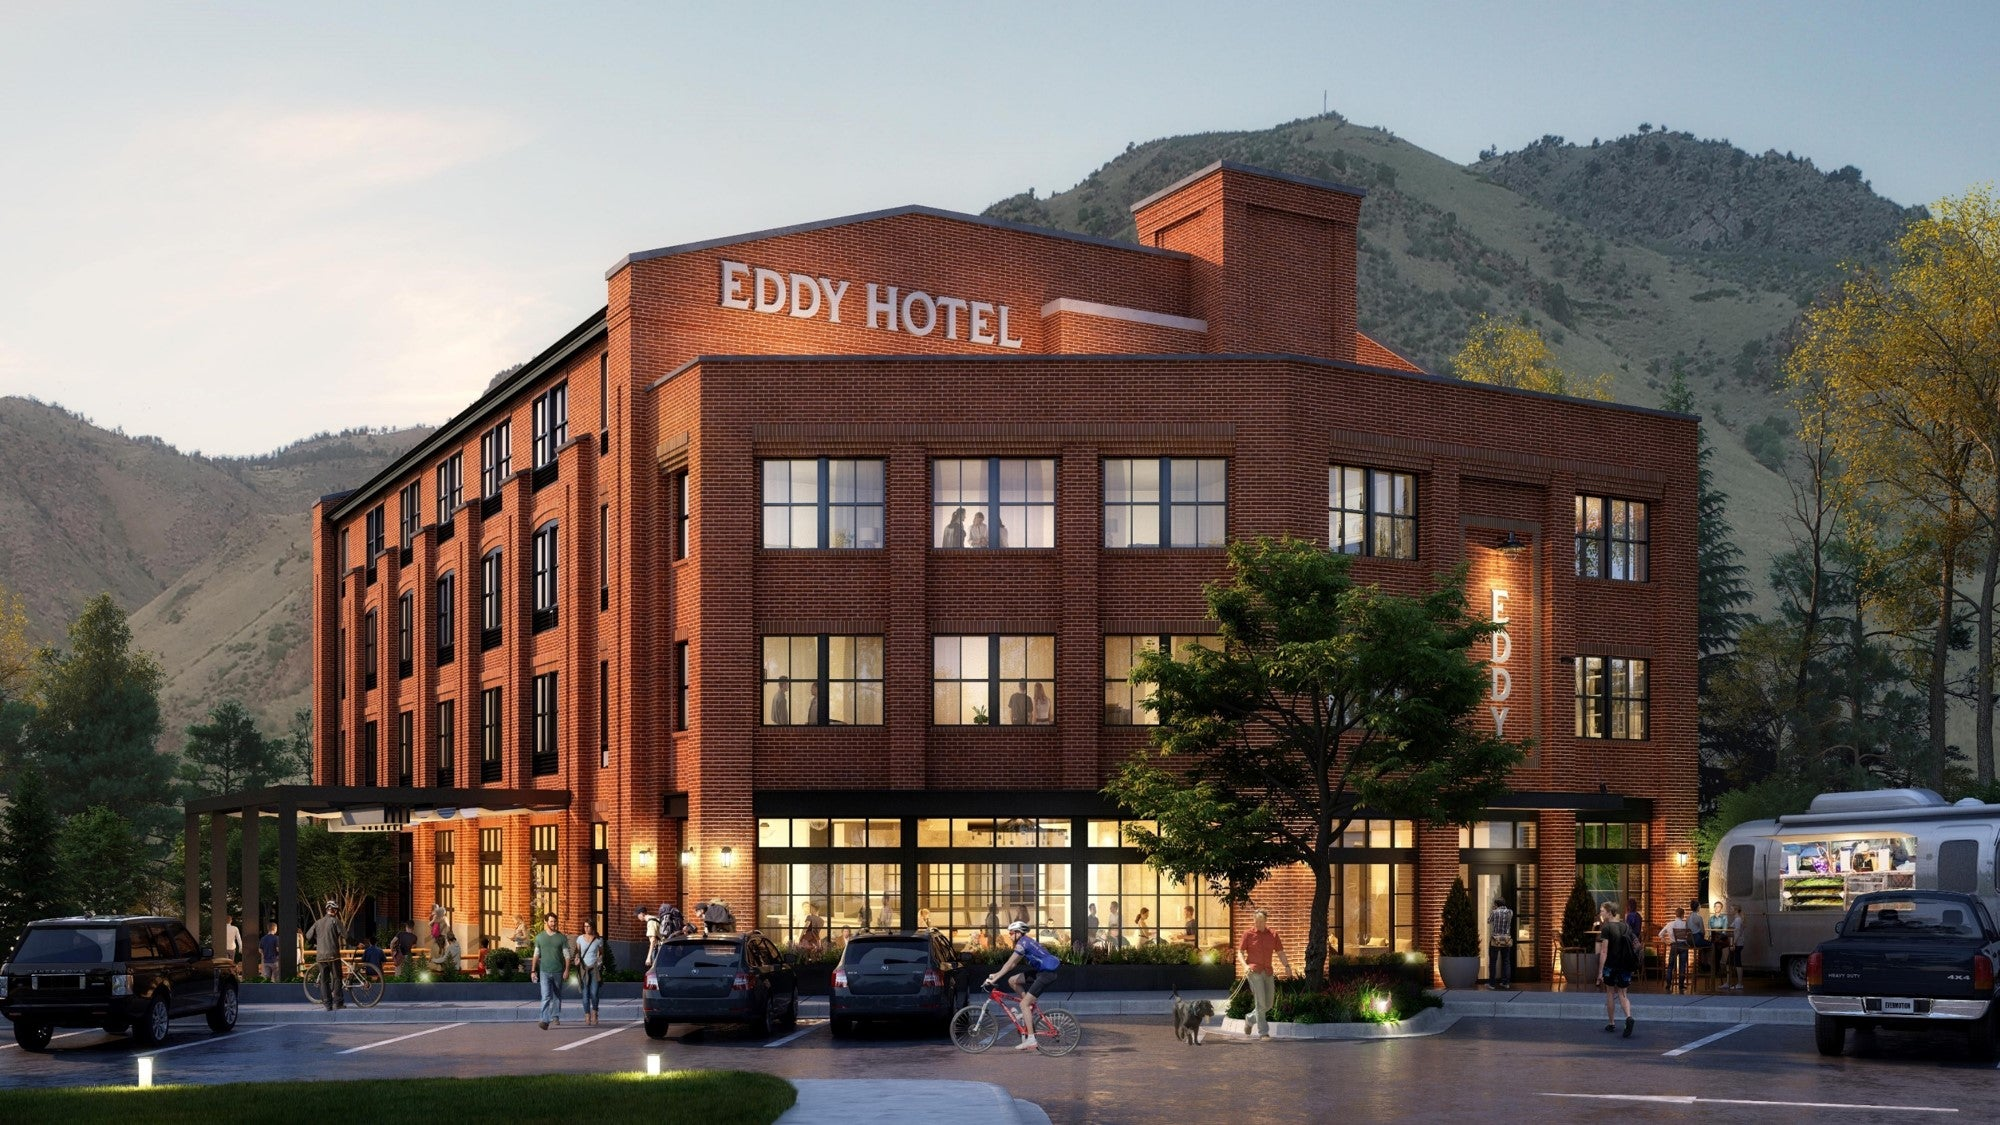 The Eddy Hotel Exterior Rendering